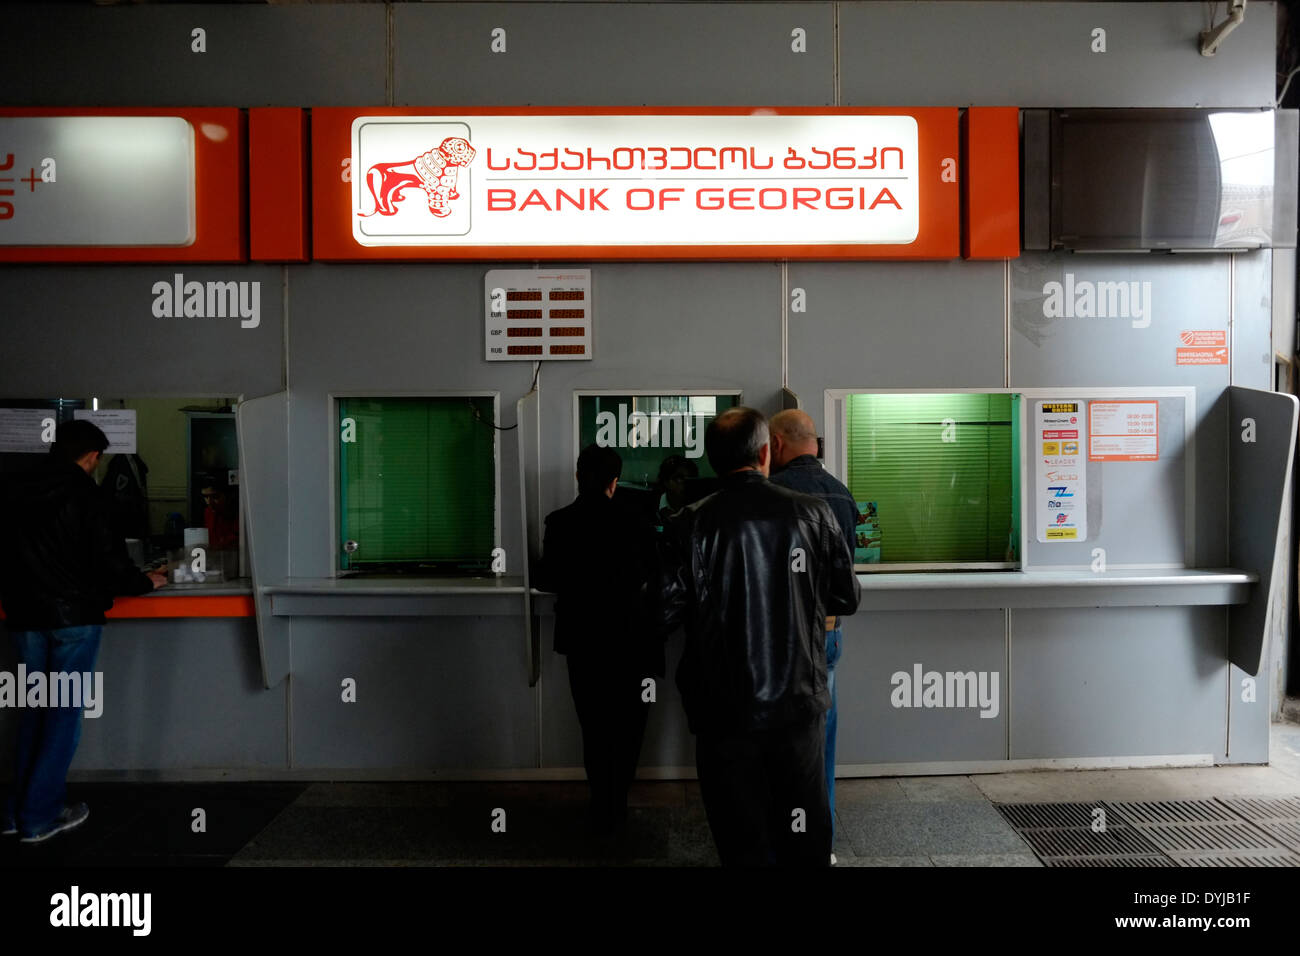 A small branch of Bank of Georgia in the metro station in Tbilisi capital of the Republic of Georgia - Stock Image